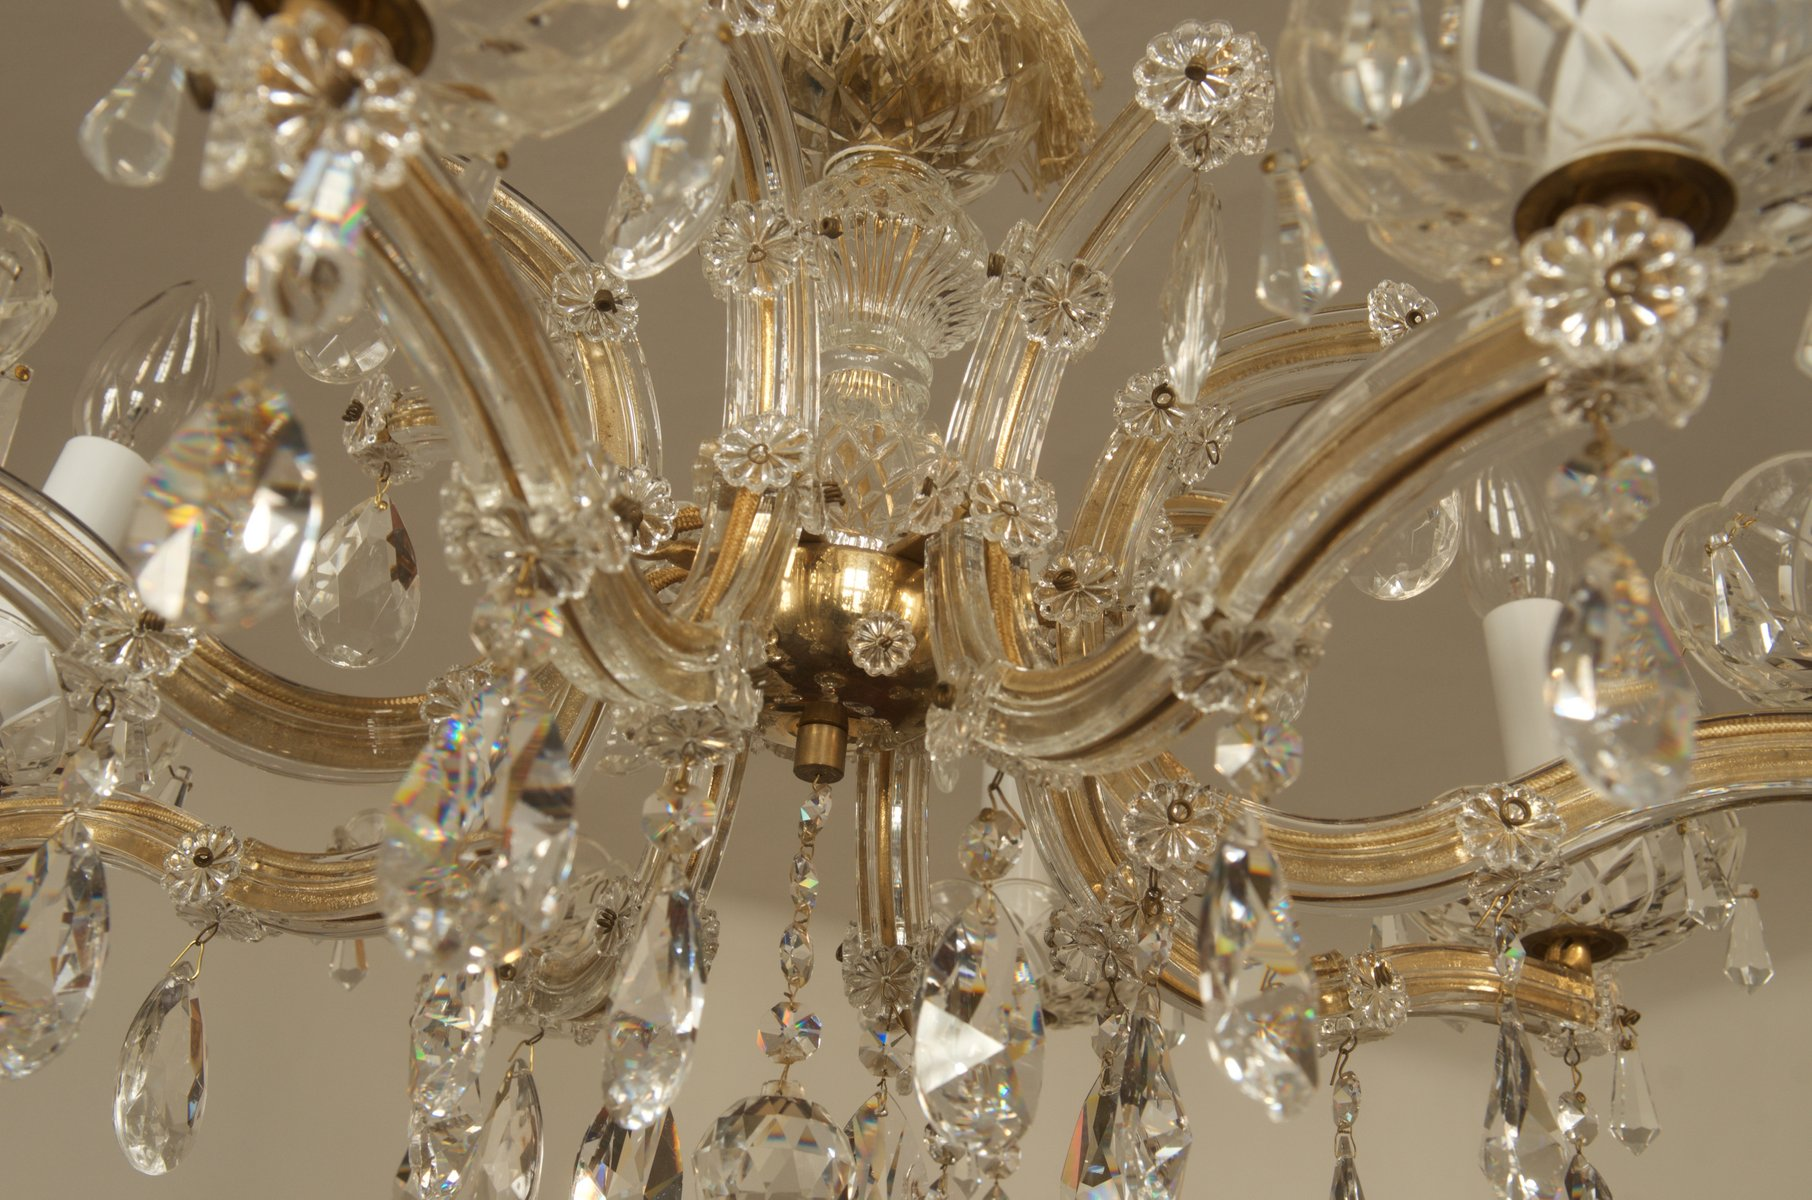 Austrian Crystal Chandelier Lighting Musethecollective